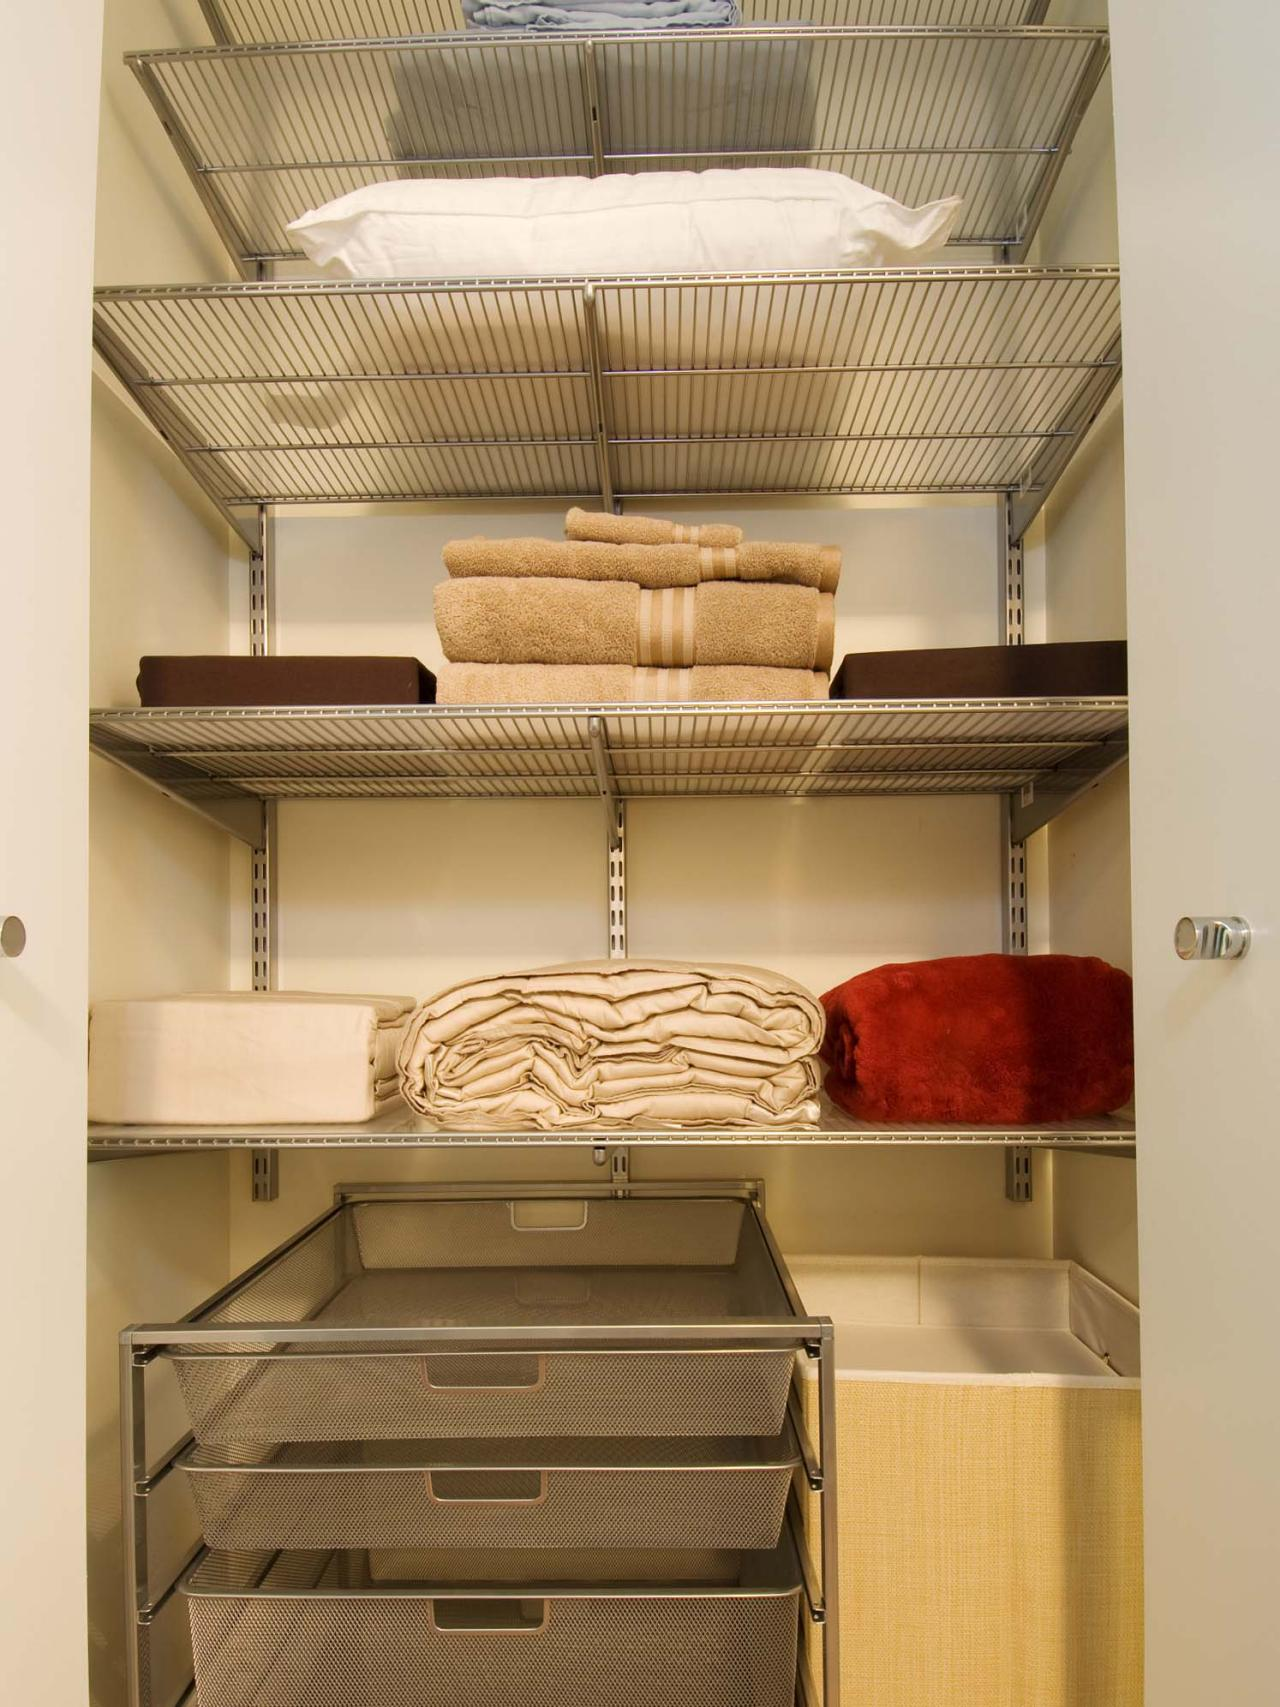 walk-in-linen-closet-design-photo-8